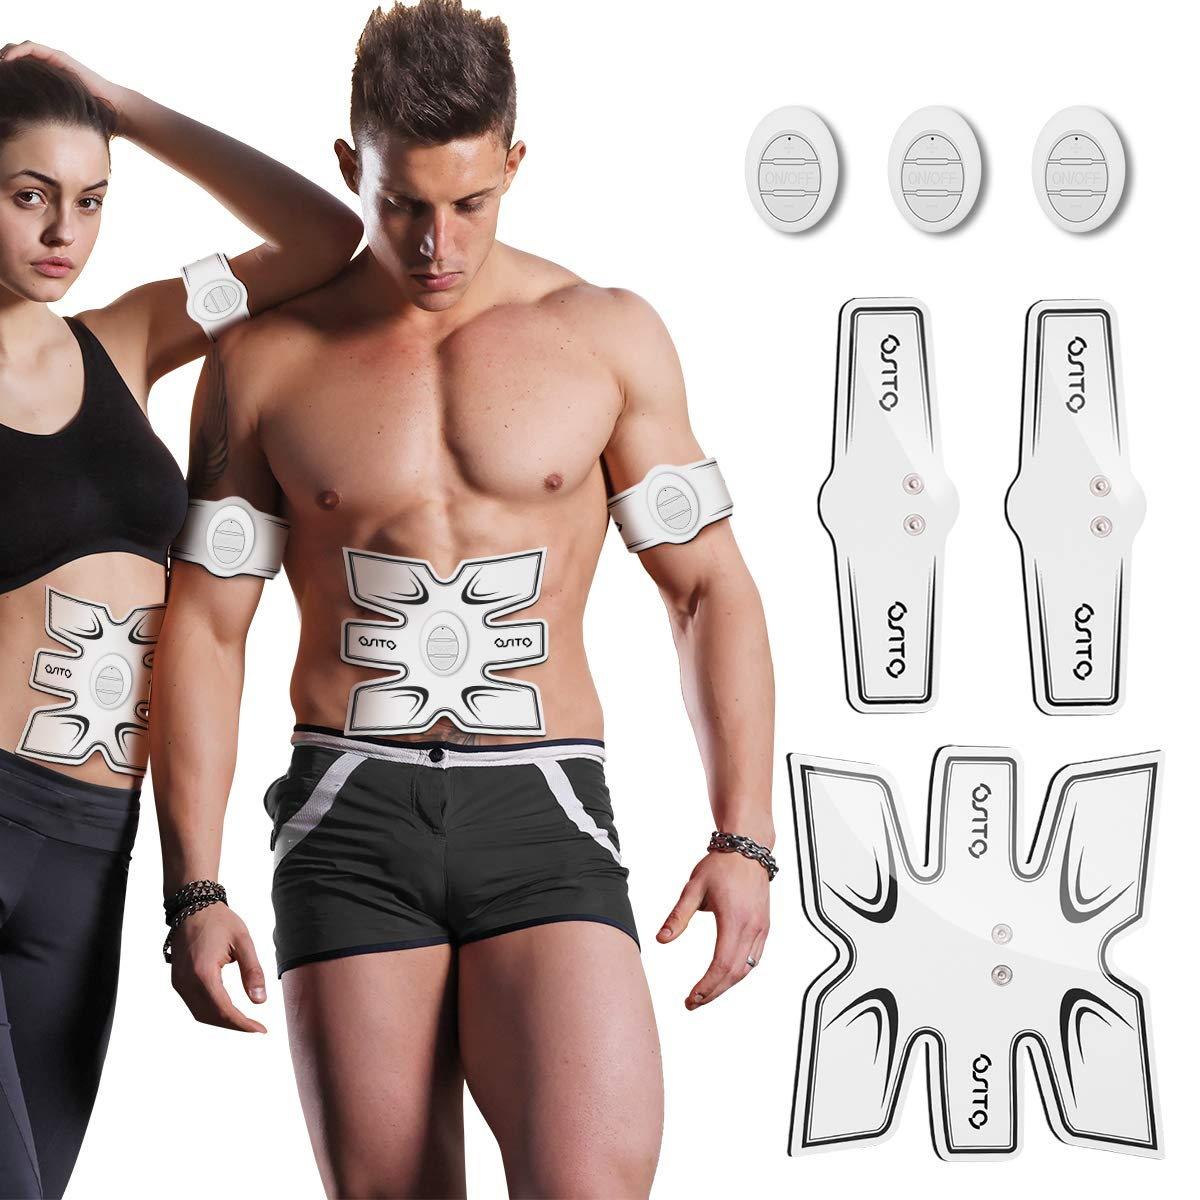 OSITO Abs Stimulator Muscle Toner Abdominal Muscle Training Gear Portable Rechargeable EMS Ab Stimulators